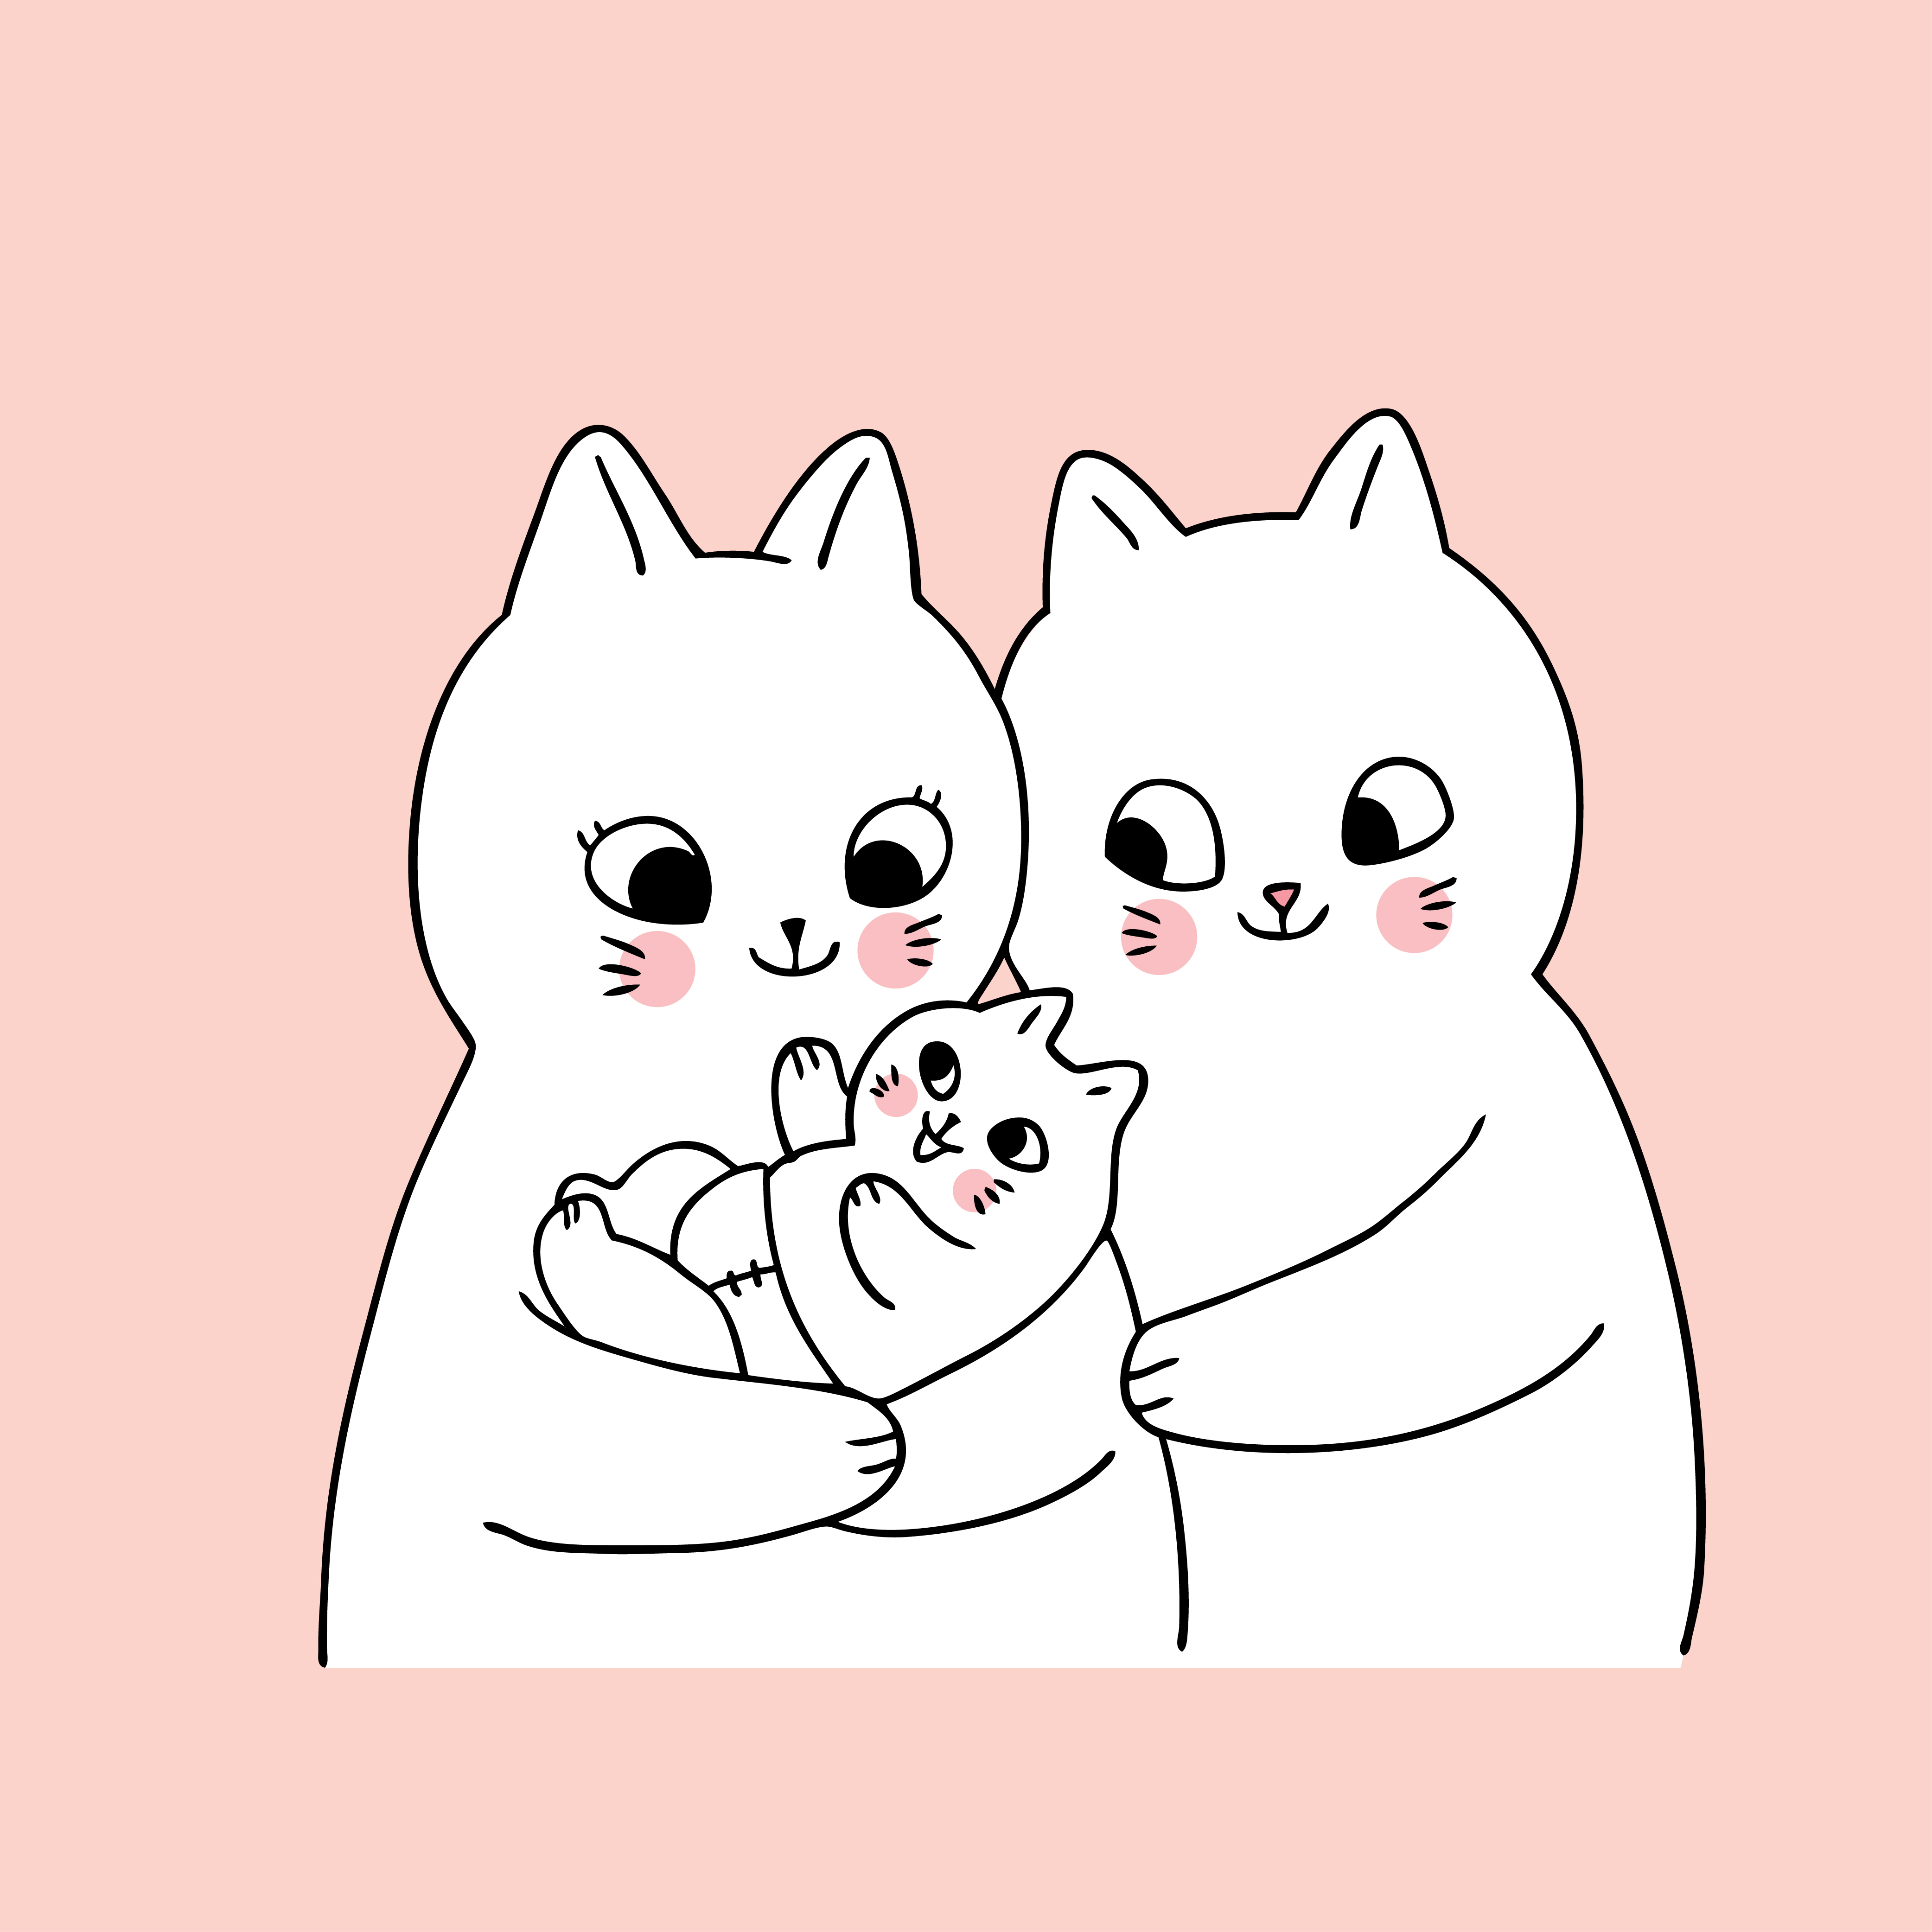 Cartoon cute family cats and new born 680394 - Download ... (4167 x 4167 Pixel)